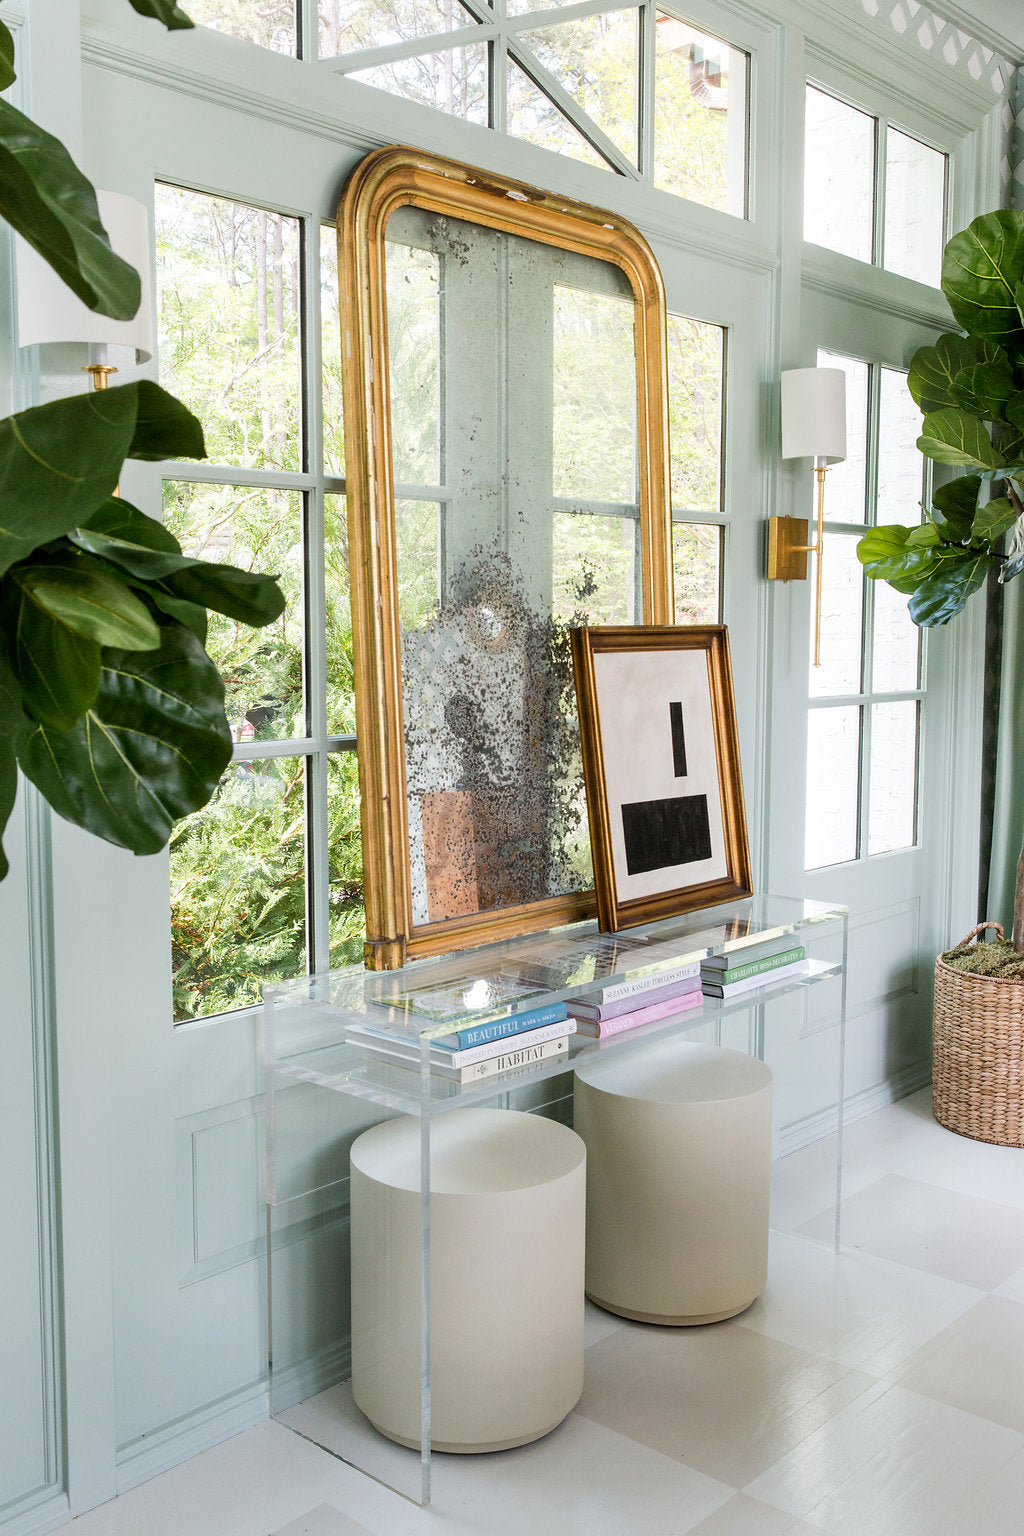 Every room should have at least one antique (and we love the juxtaposition of the Louis Philippe mirror and the lucite console – so chic). Photo by Anna Routh (http://annarouth.com)